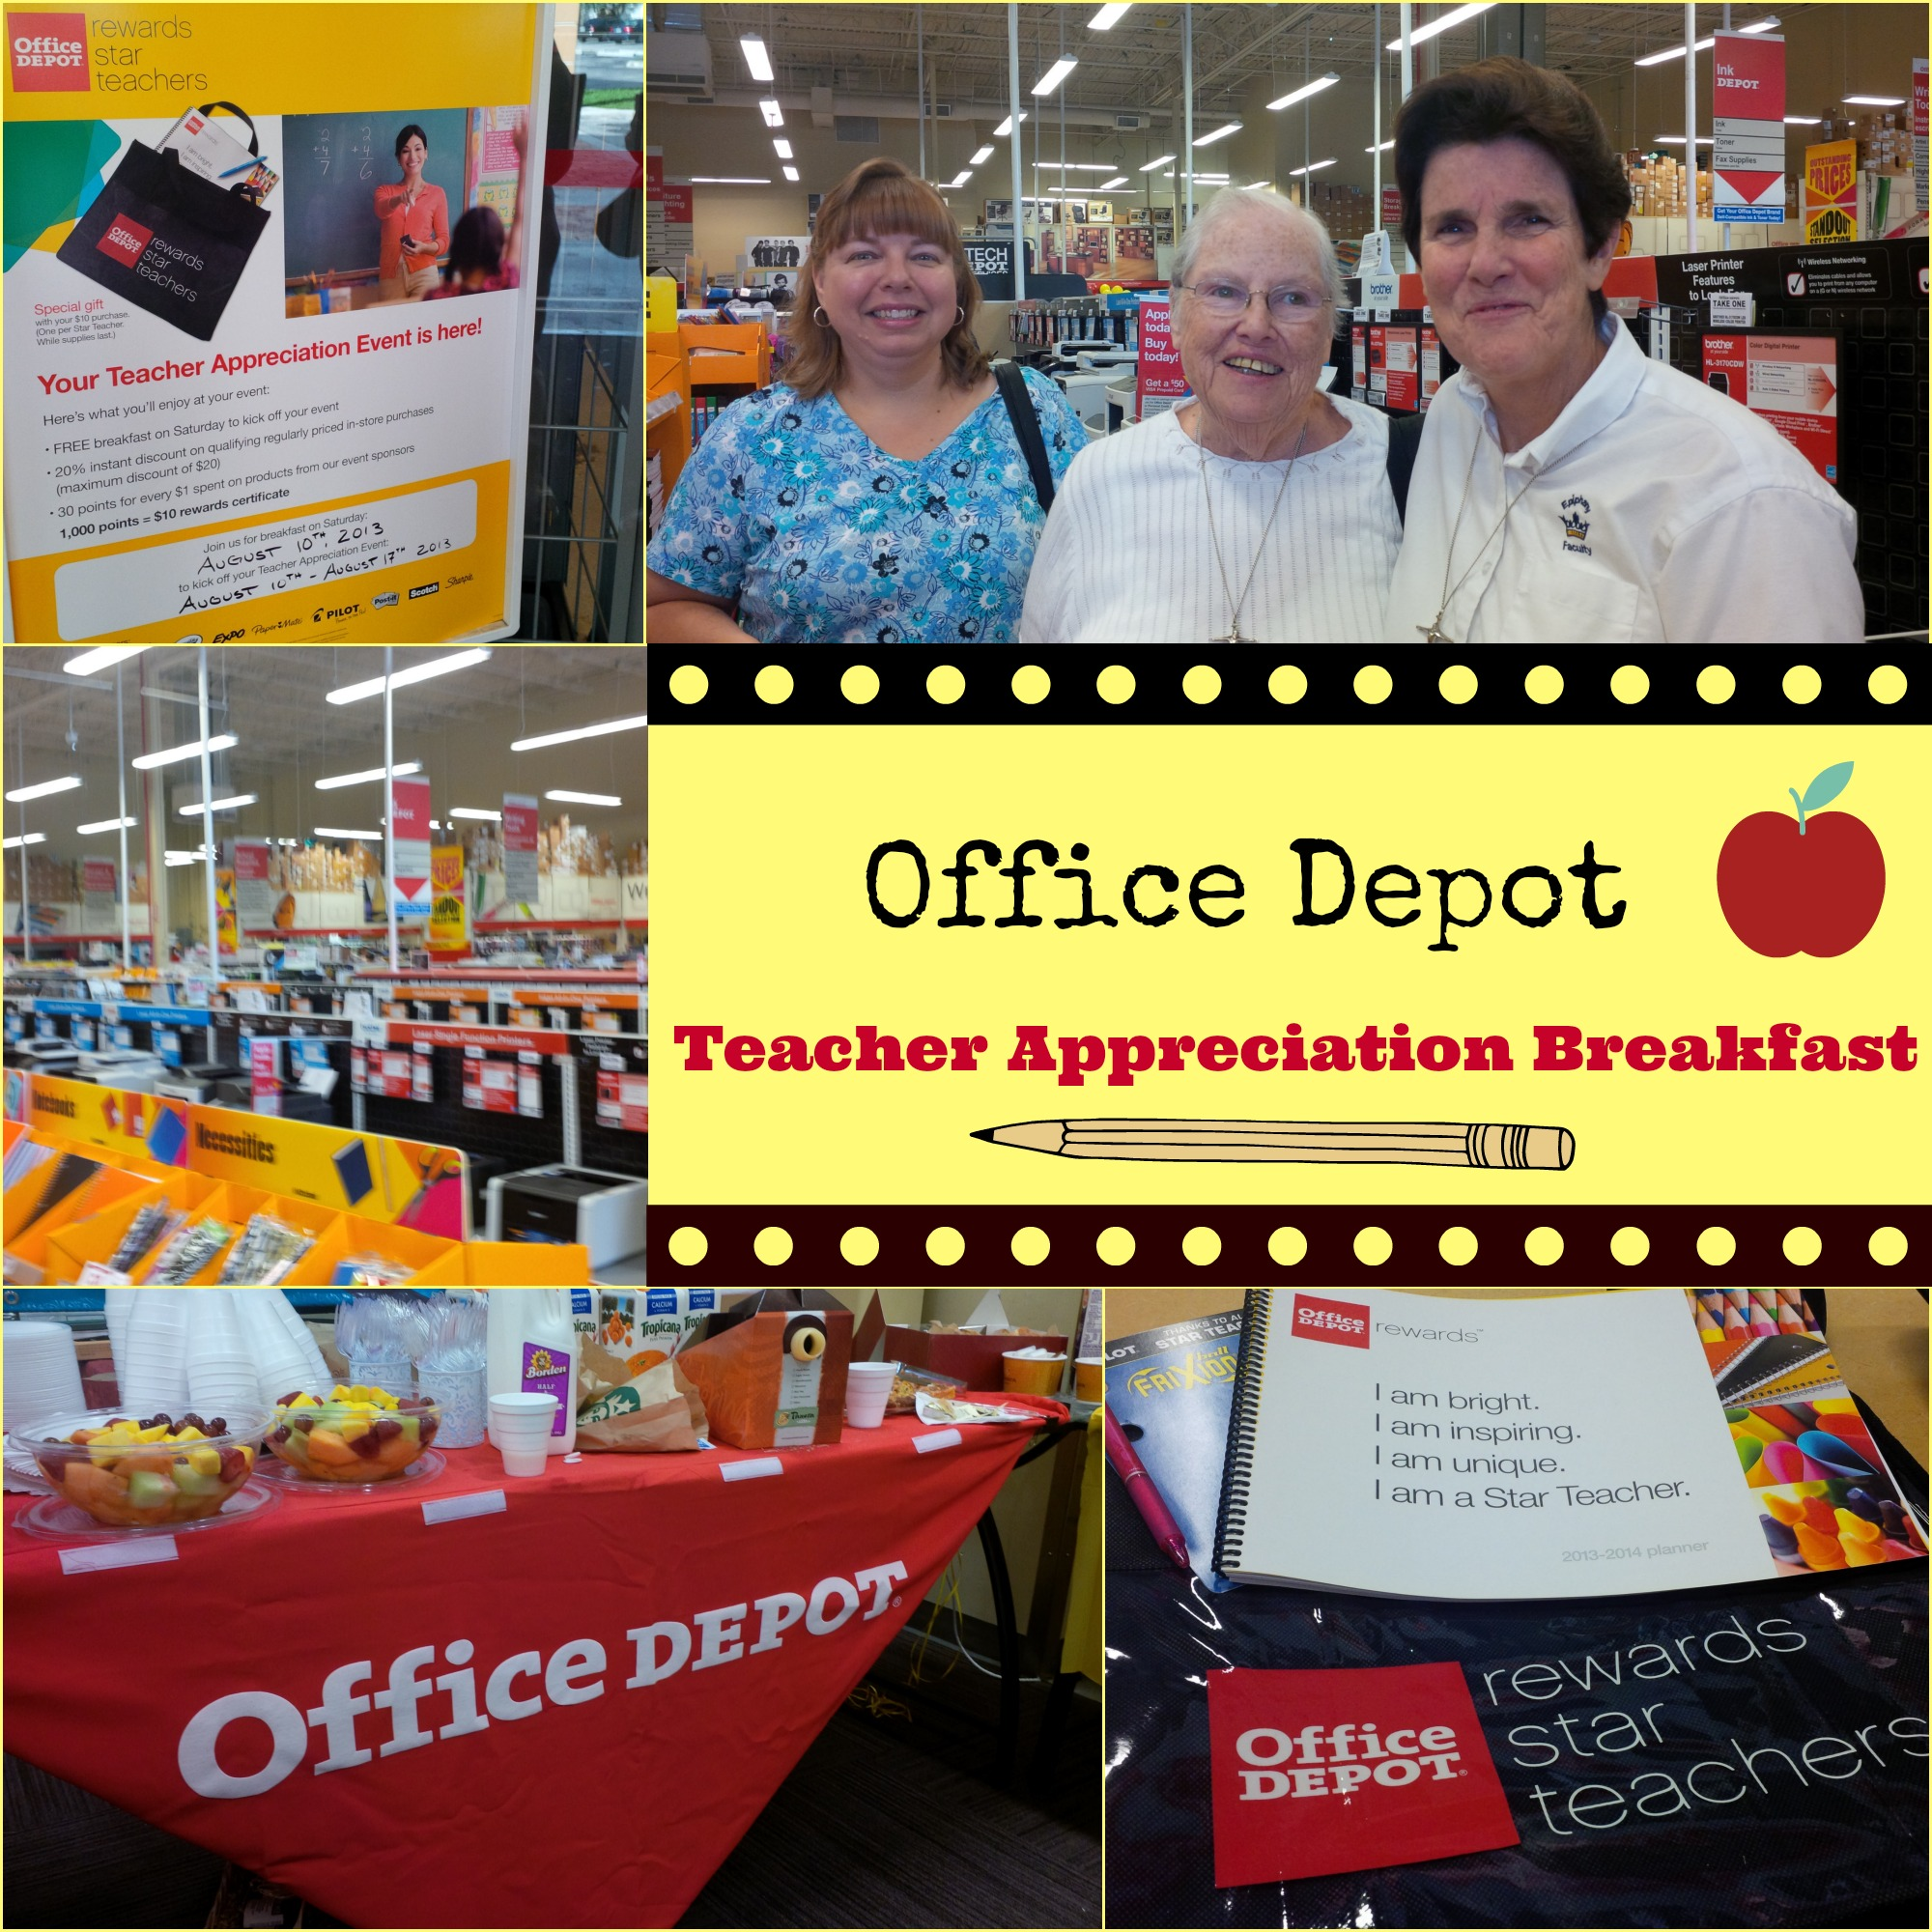 Rewards are paid quarterly in the form of an Office Depot® Reward Card when you earn a minimum of $10 in Rewards. Rewards carry over from quarter to quarter within a calendar year. Visit renardown-oa.cf or ask a store associate for full details.